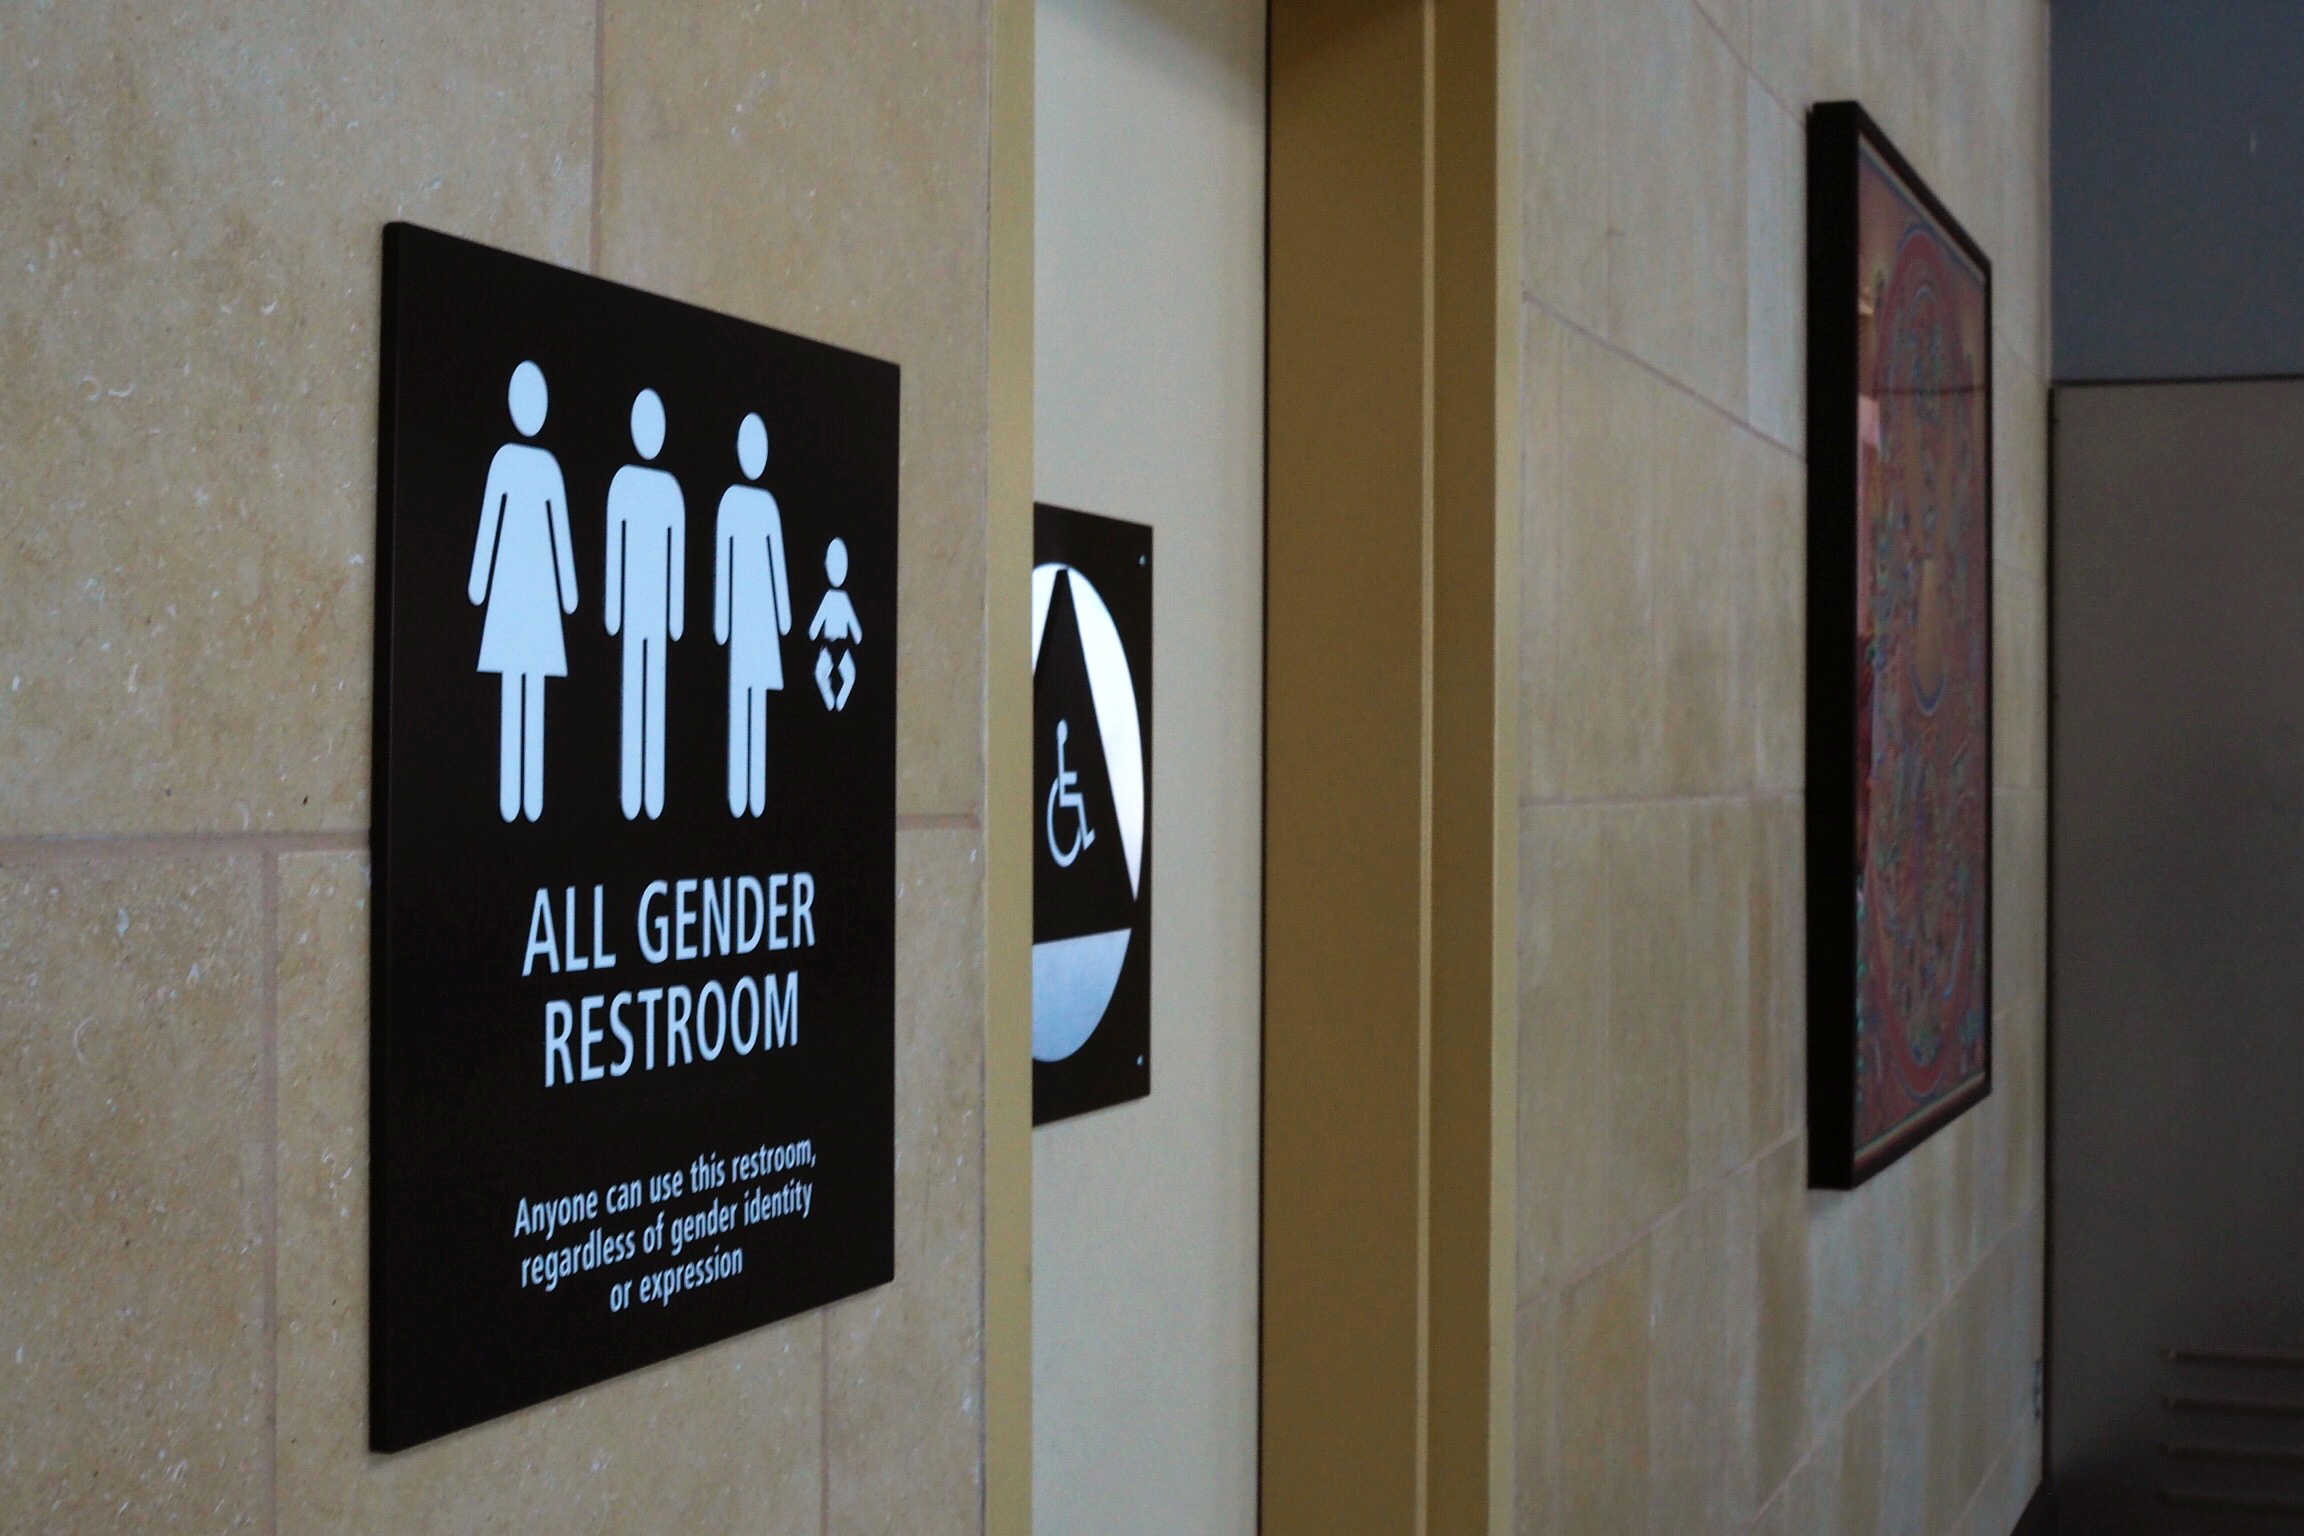 us states sue federal government over transgender bathroom use